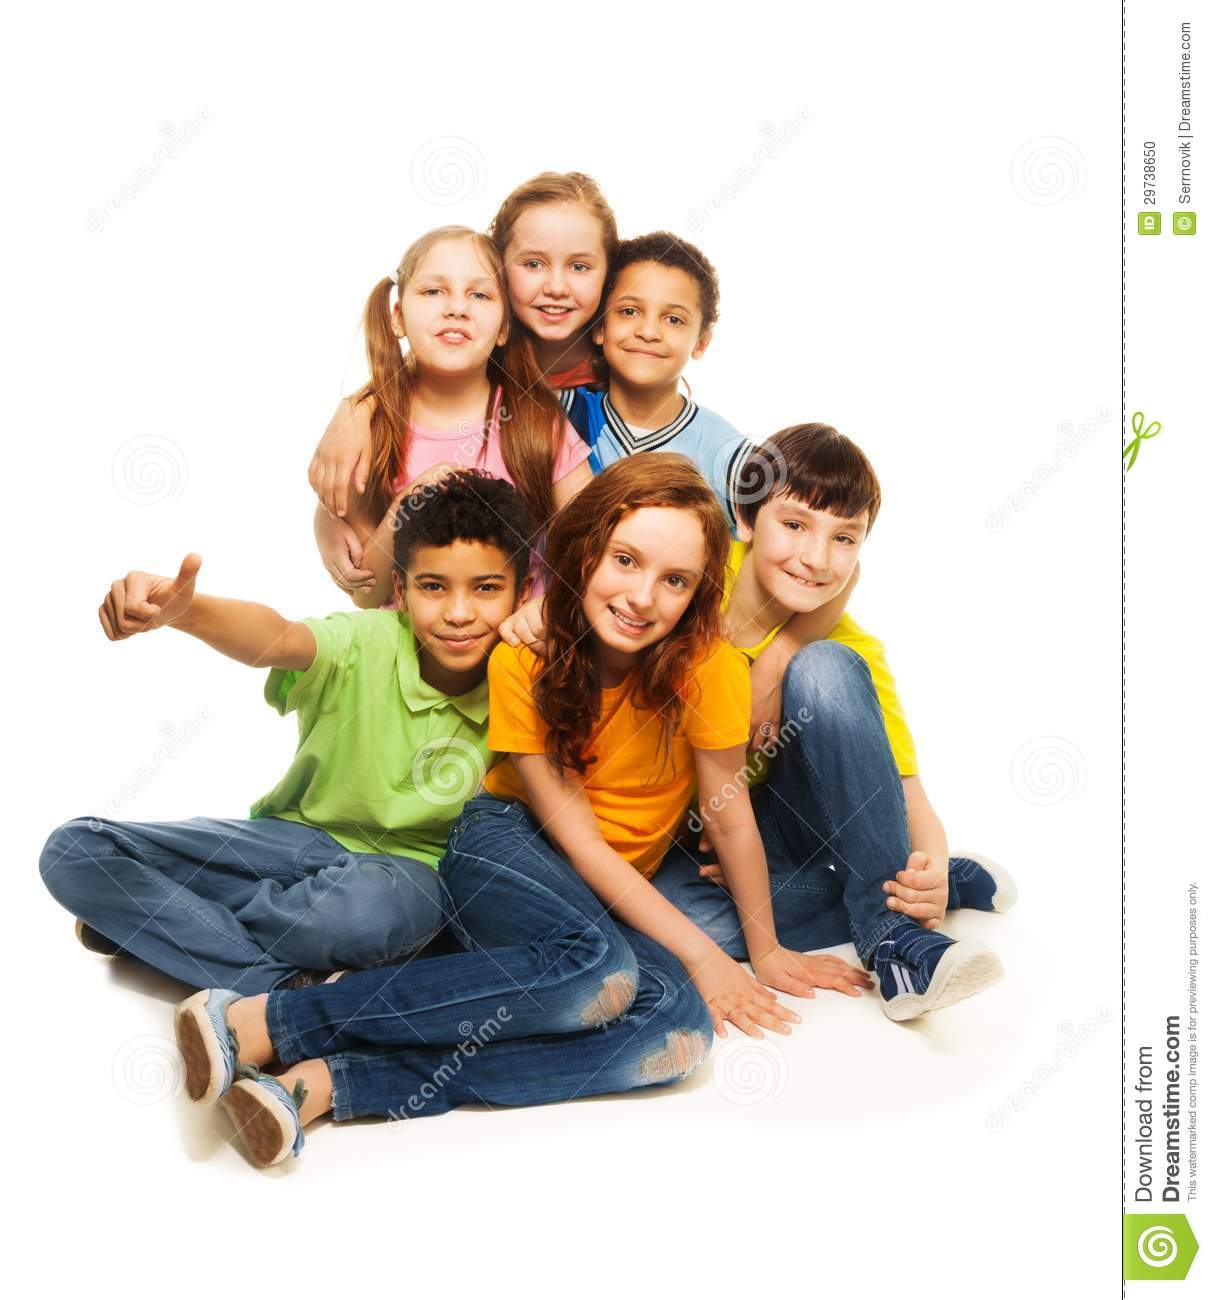 Group of happy ersity looking kids stock photo image 29738650